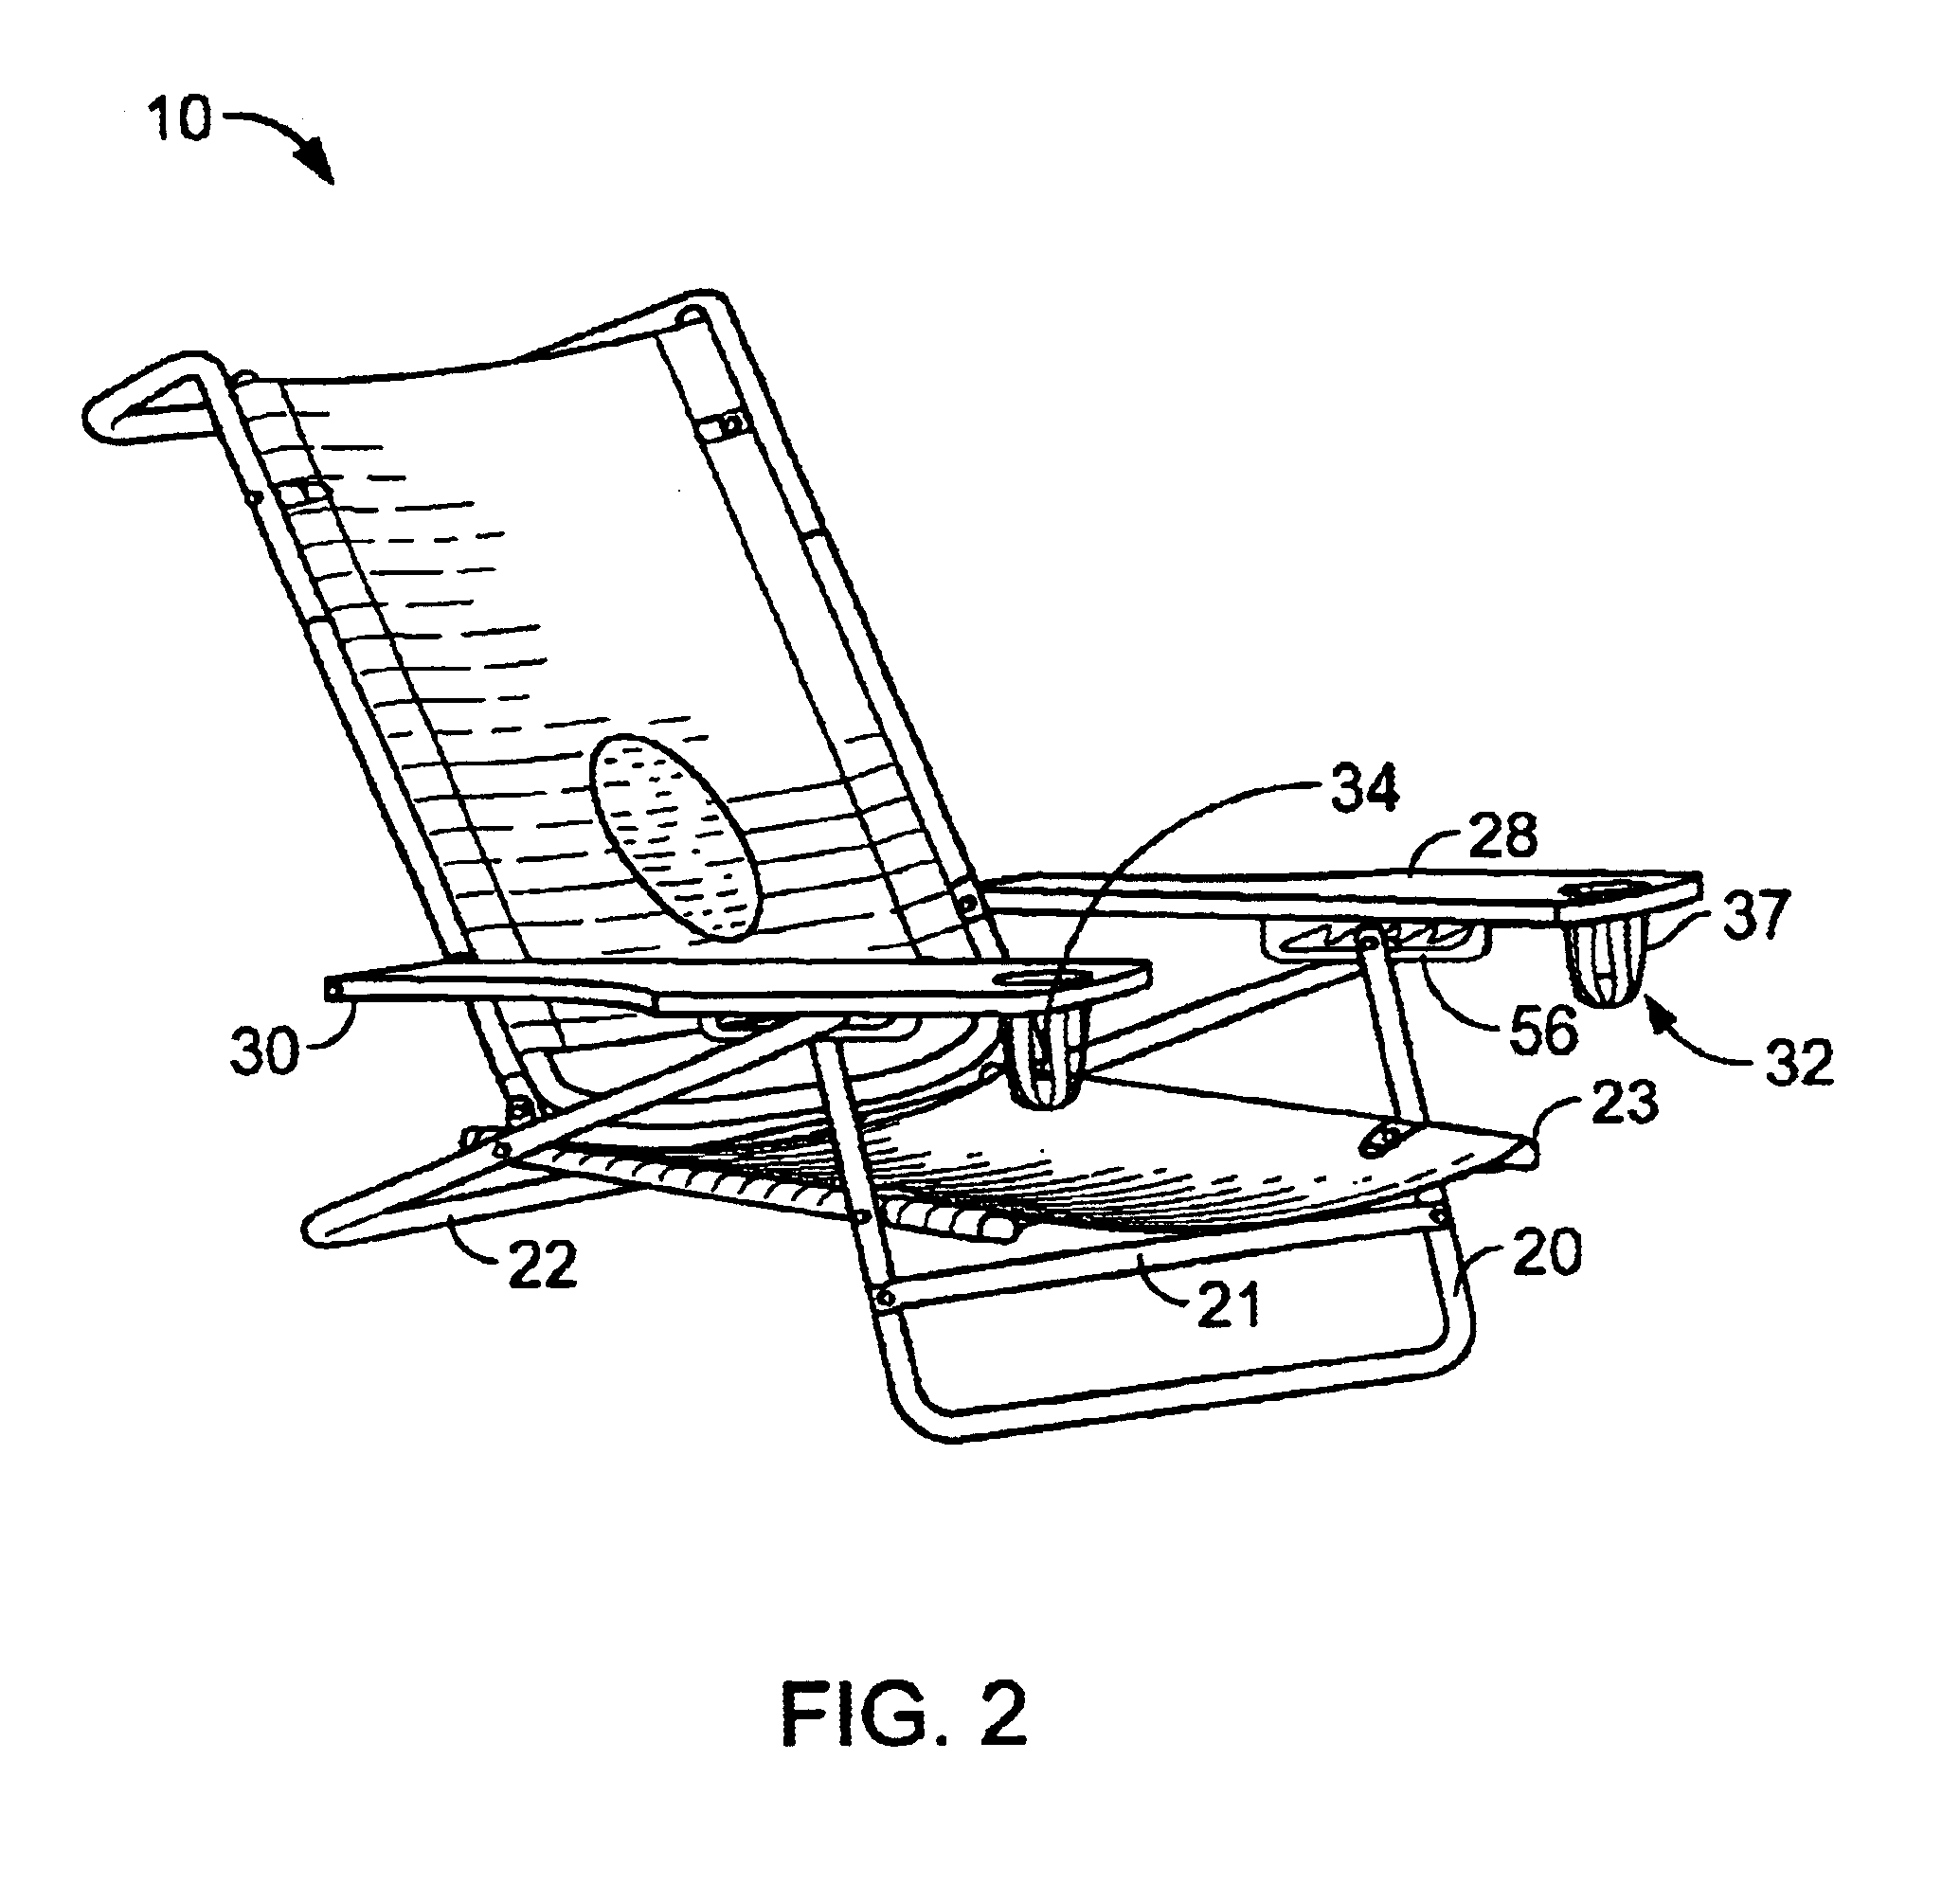 Easy beach chair drawing - Patent Drawing